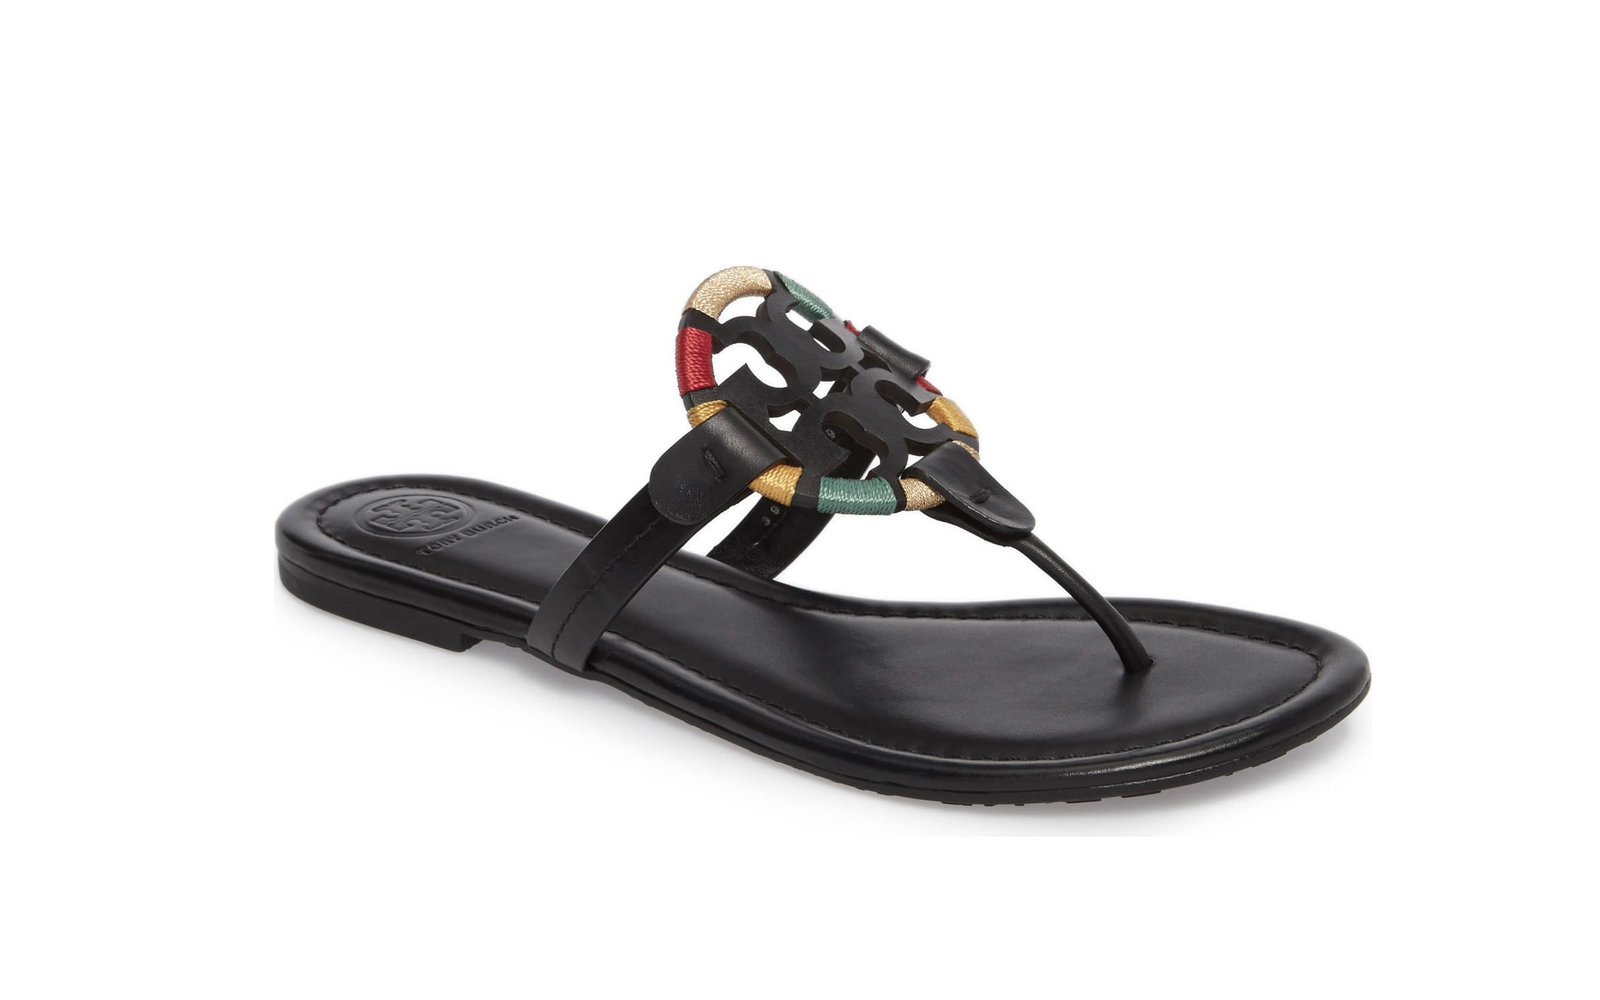 0ffea5f0d2dcb4 The Best Sandals from Nordstrom s Huge Summer Sale